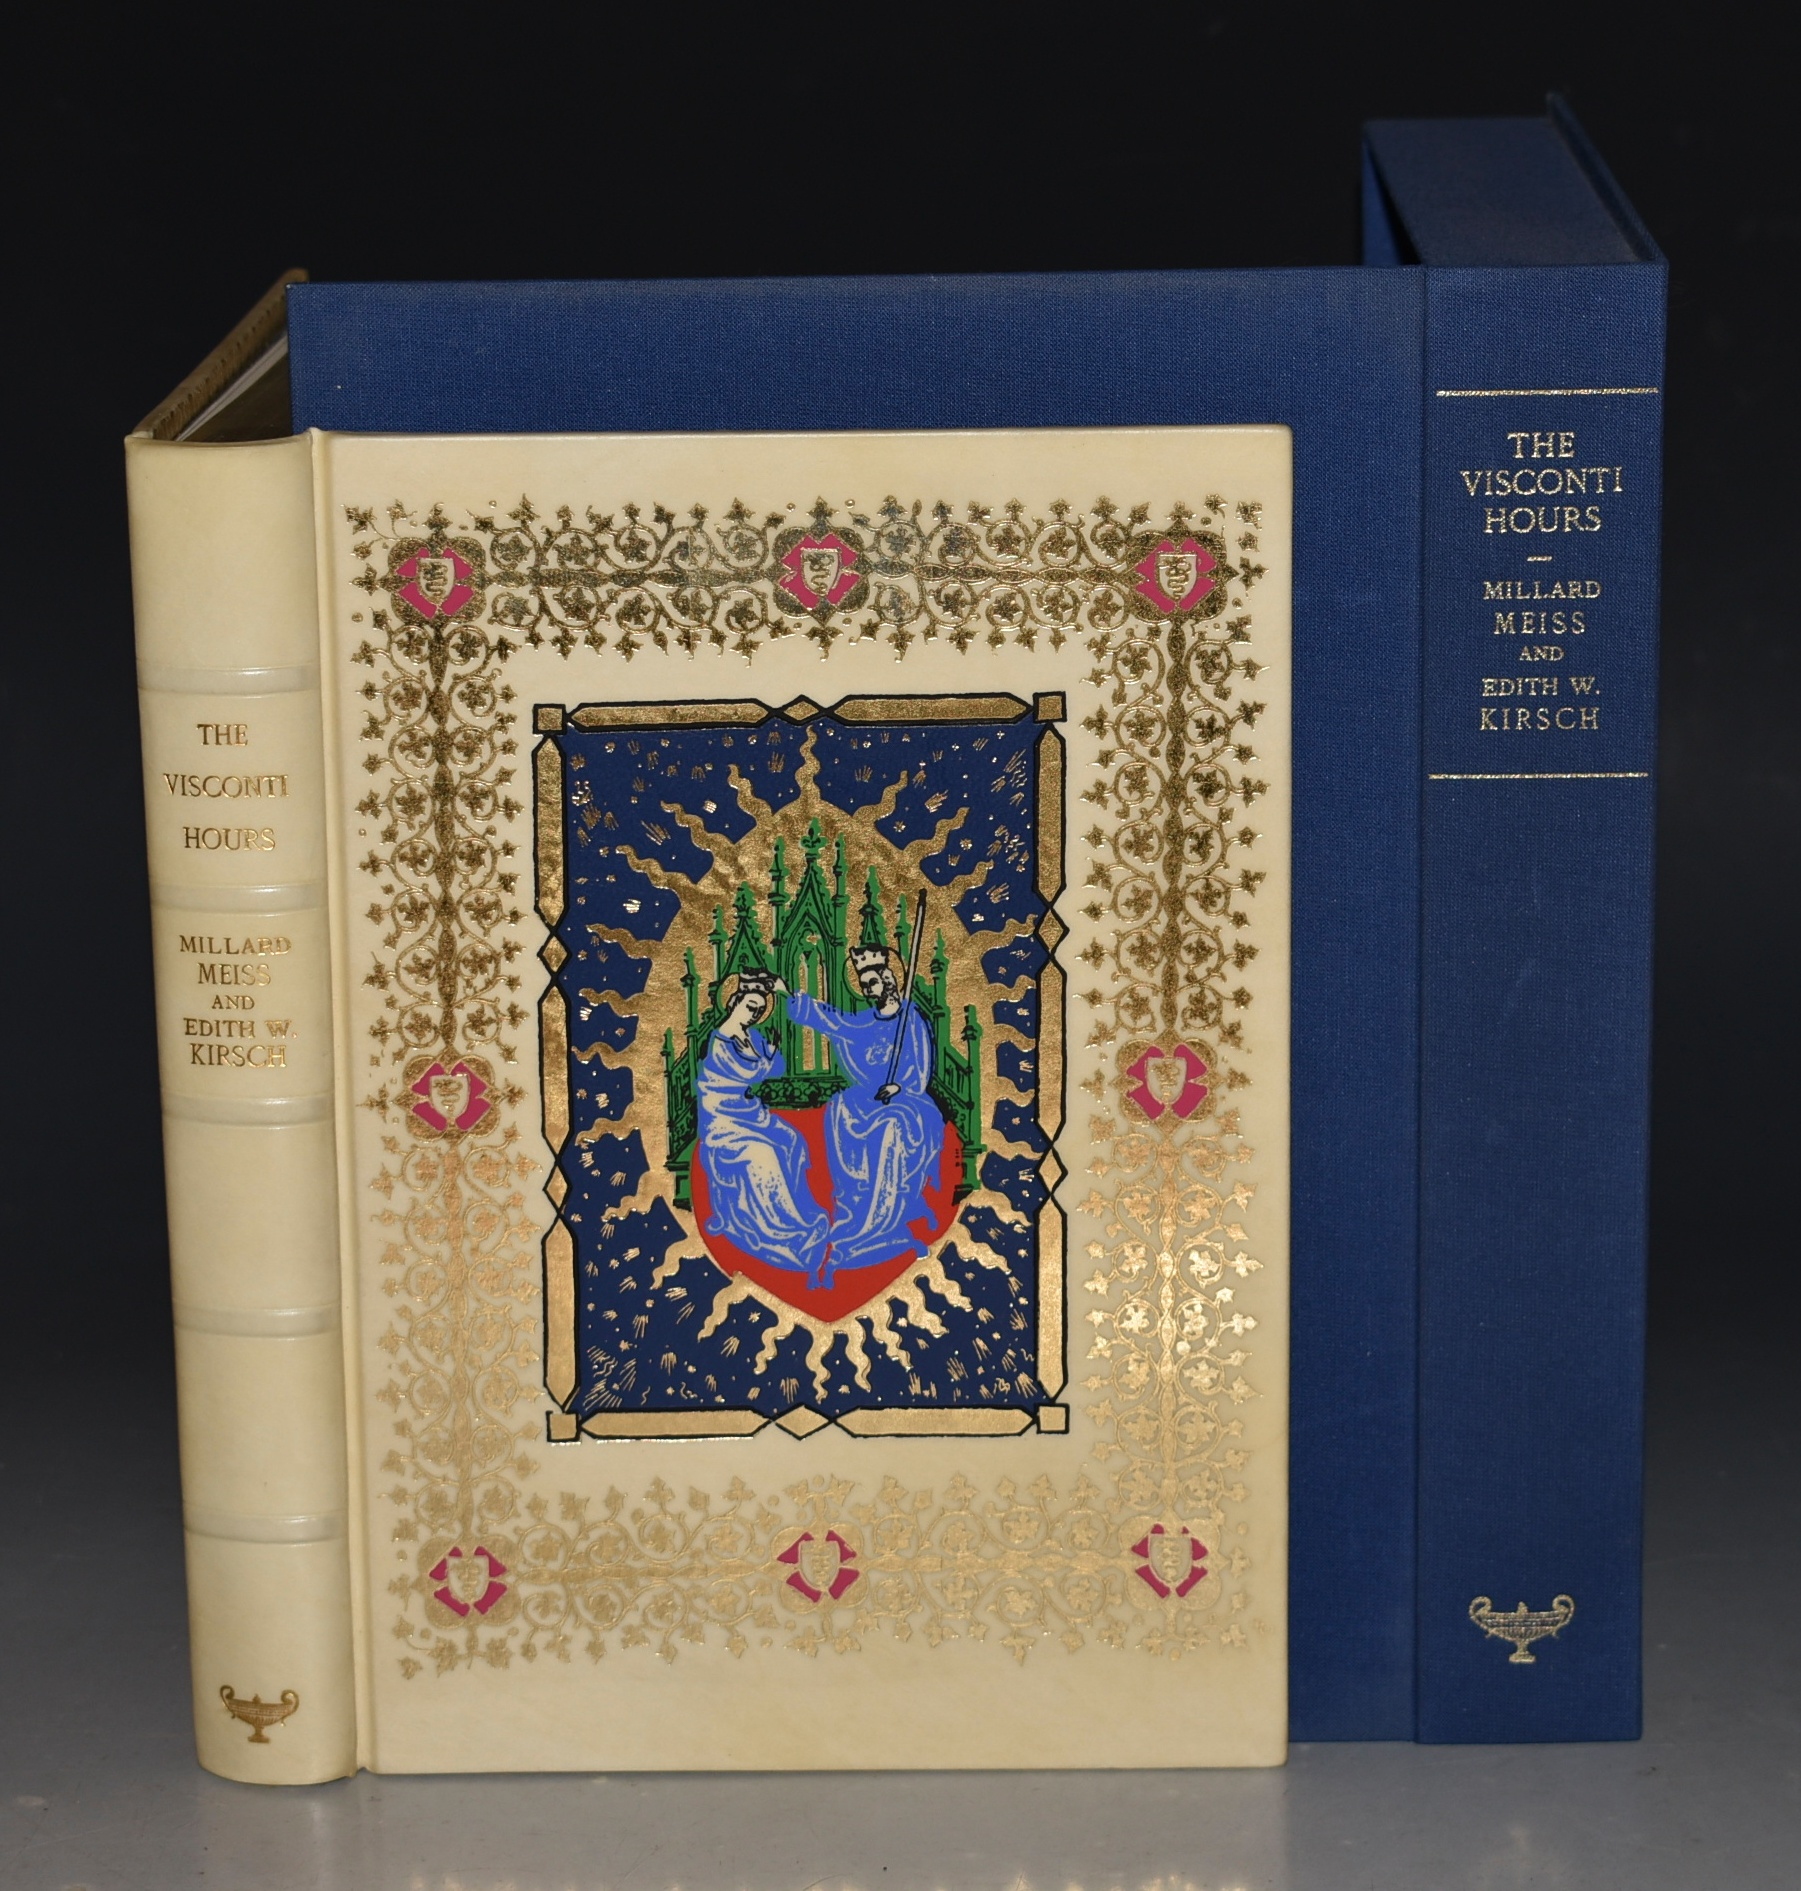 Image for The Visconti Hours. SIGNED Limited Numbered Edition.